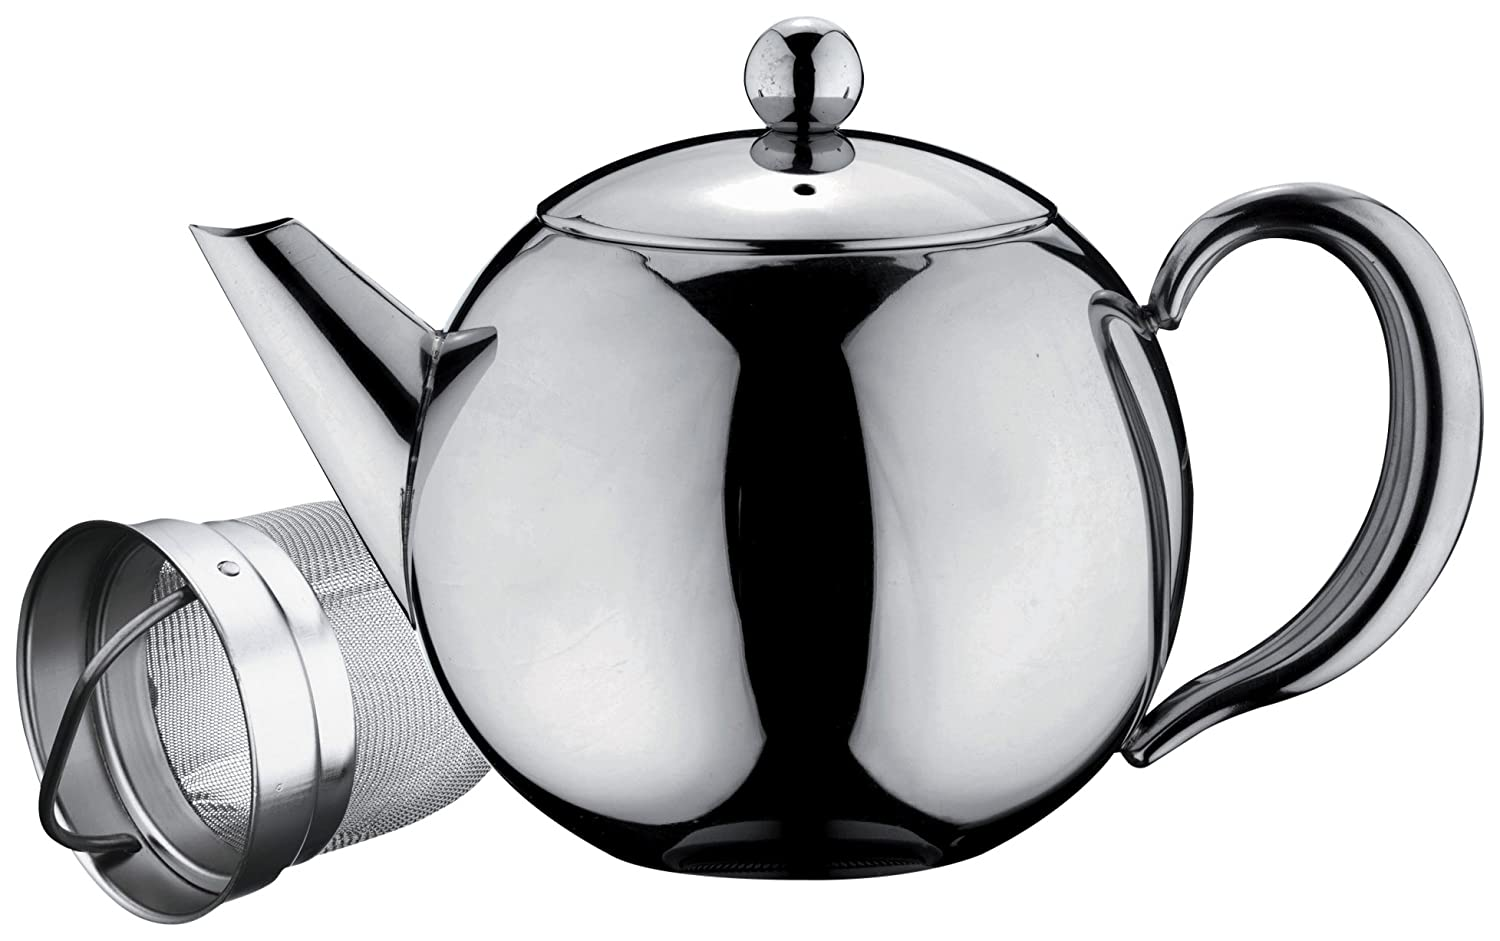 Café Ole Rondo Stainless Steel Tea Pot Easy Pour Teapot with Infuser Basket 17oz 500ml Grunwerg ST-017X